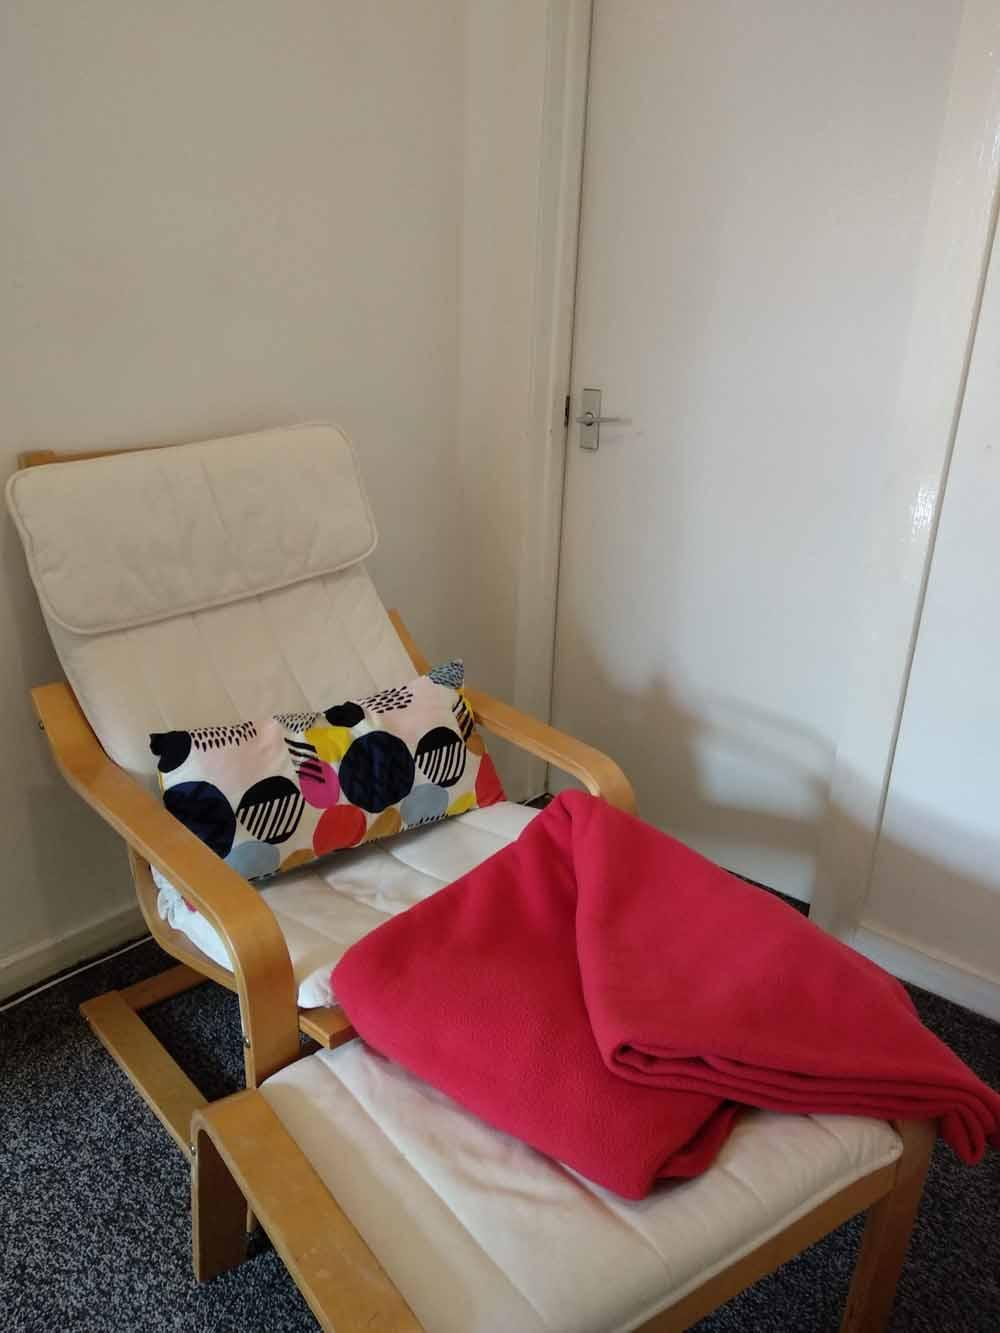 Eva found this IKEA chair, usually costing £100, for free. (Collect/PA Real Life)